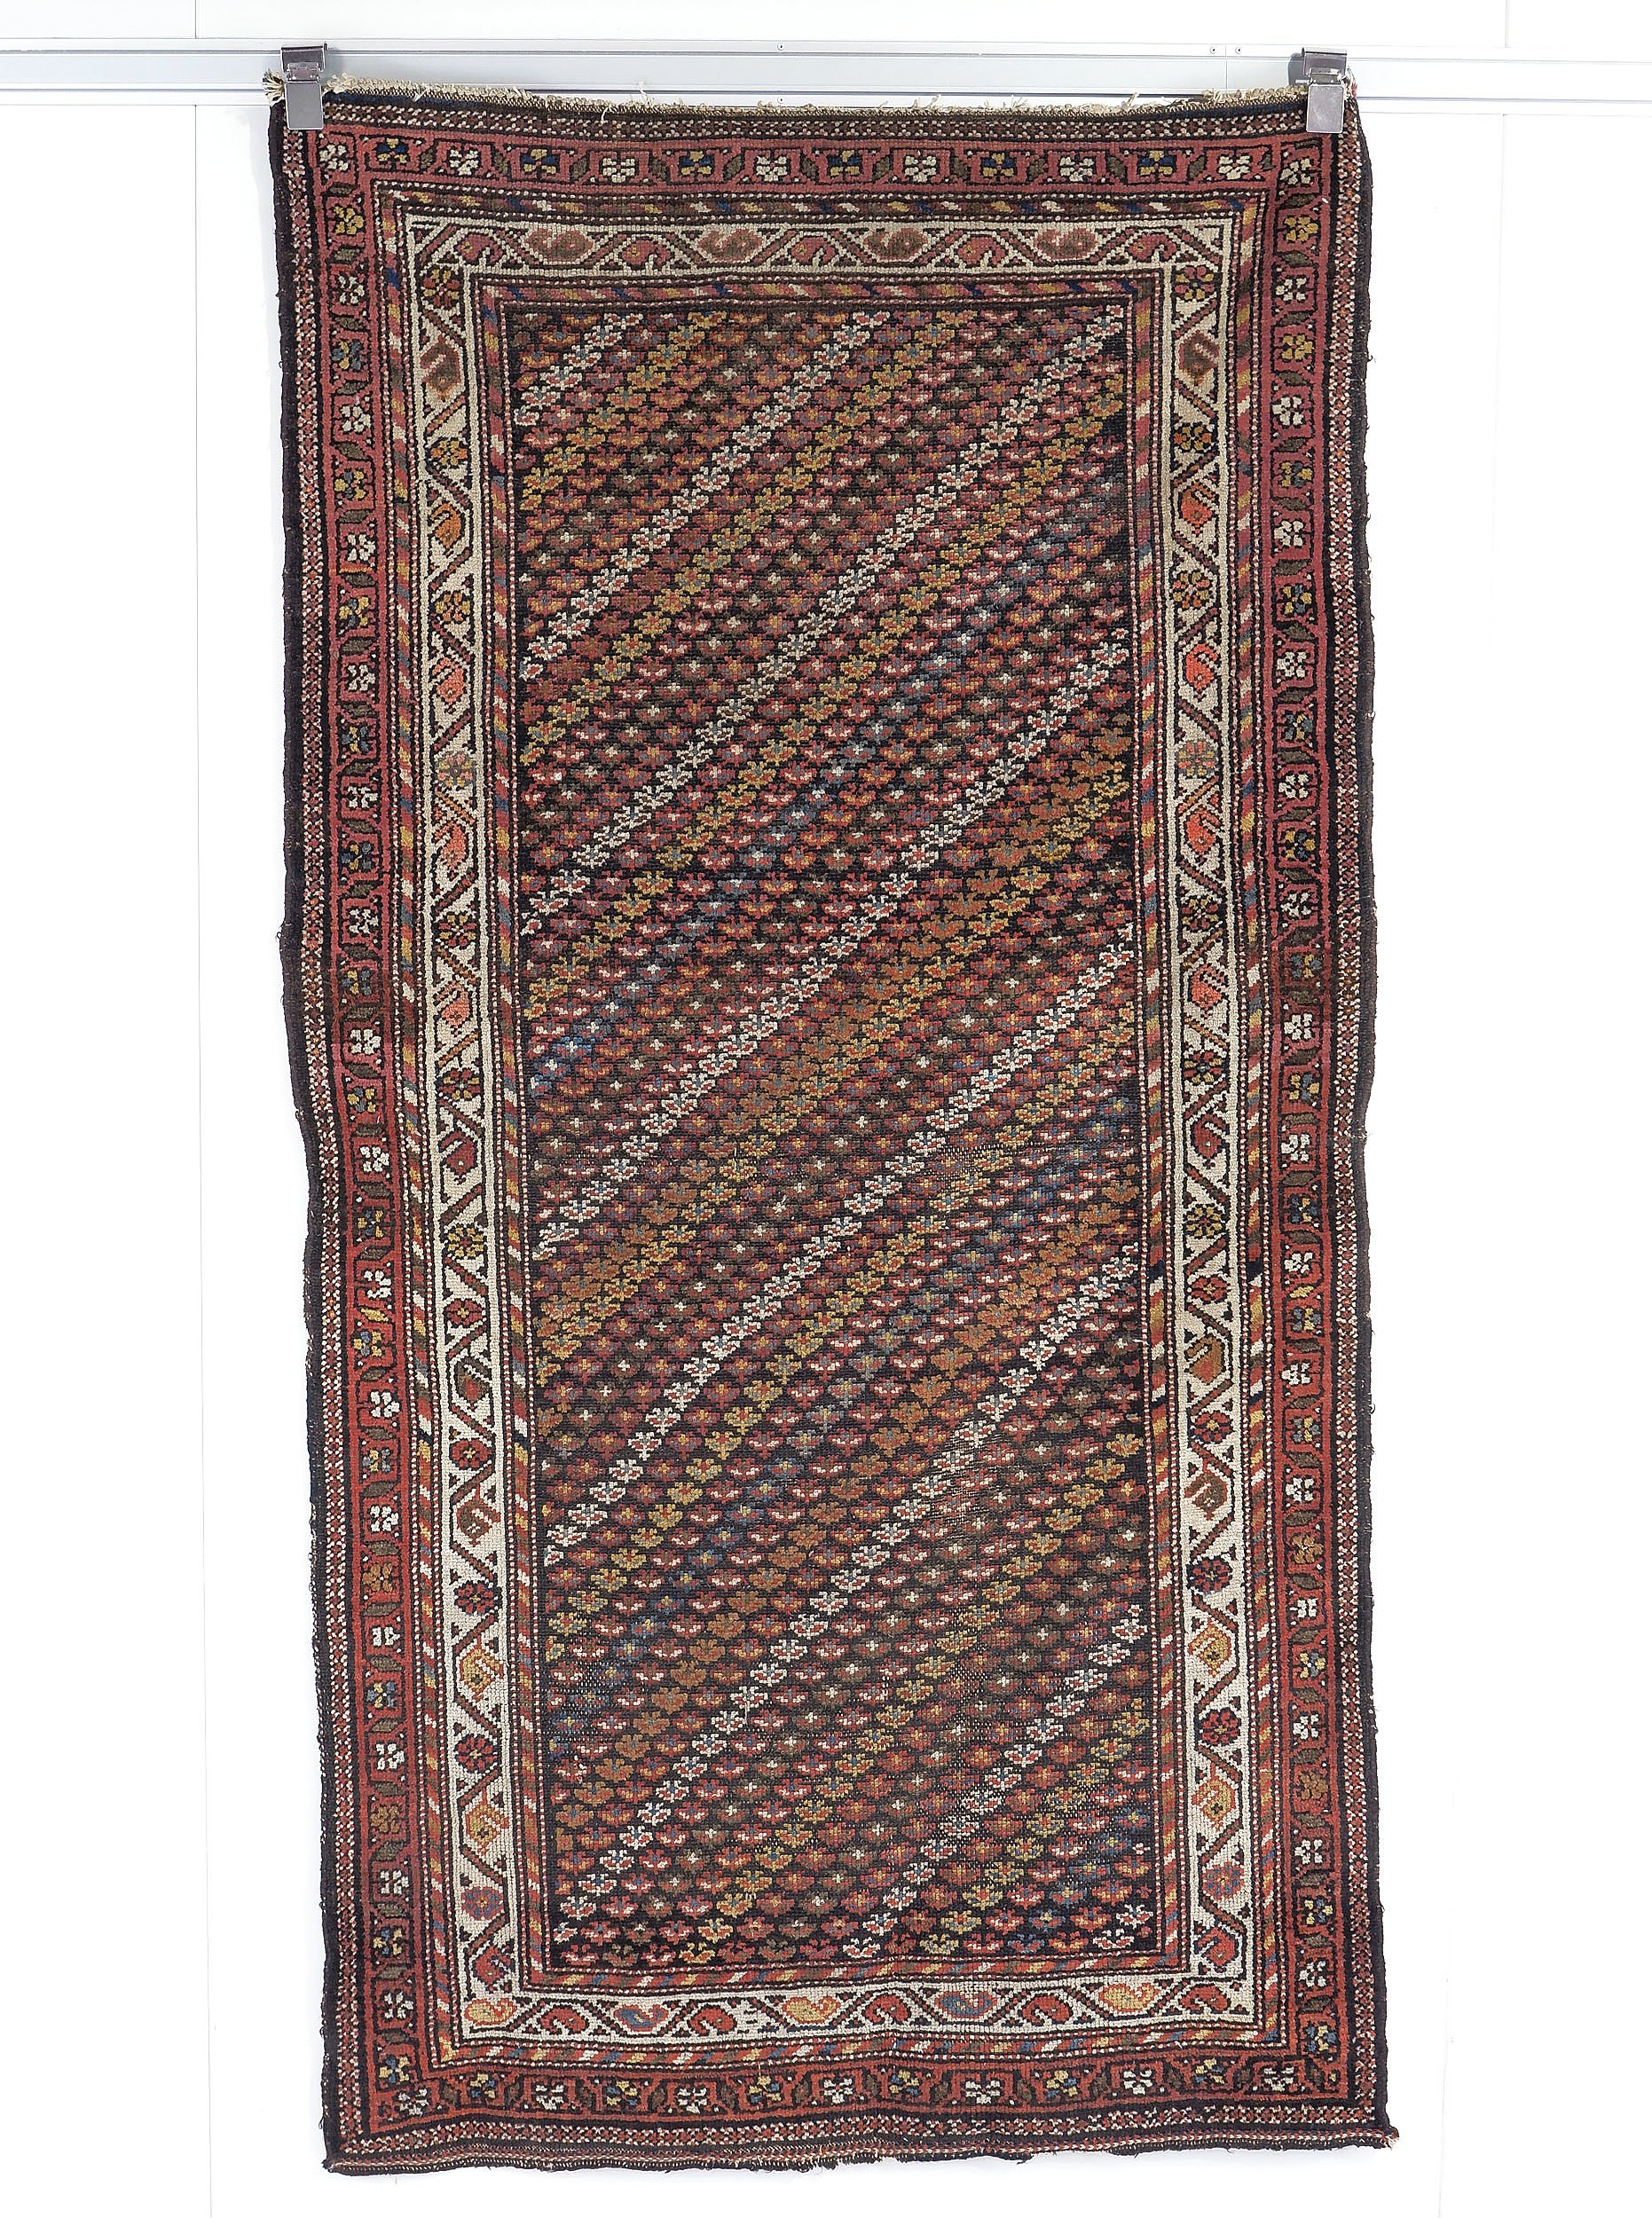 'Antique Caucasian Kuba Chichi Hand Knotted Wool Pile Rug with Diagonal Rows of Palmettes Circa 1900'